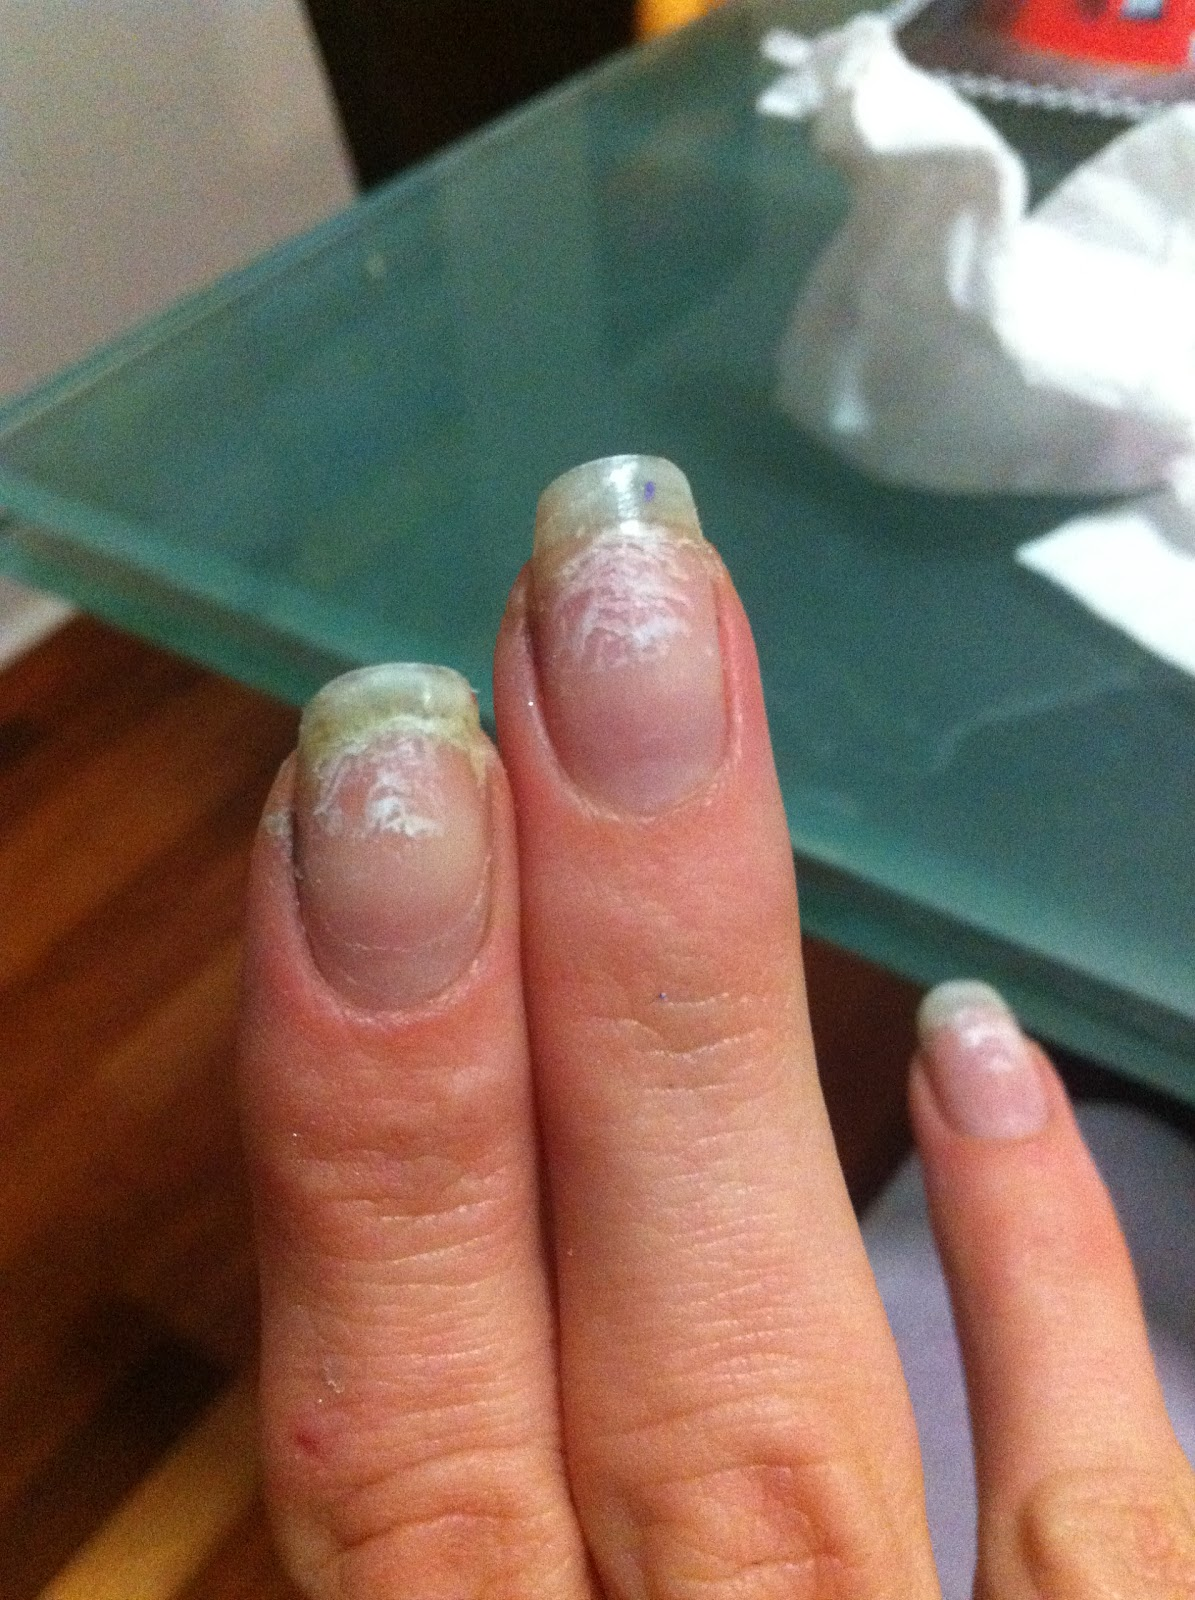 The Science Of Beauty: How To Remove A Shellac Manicure